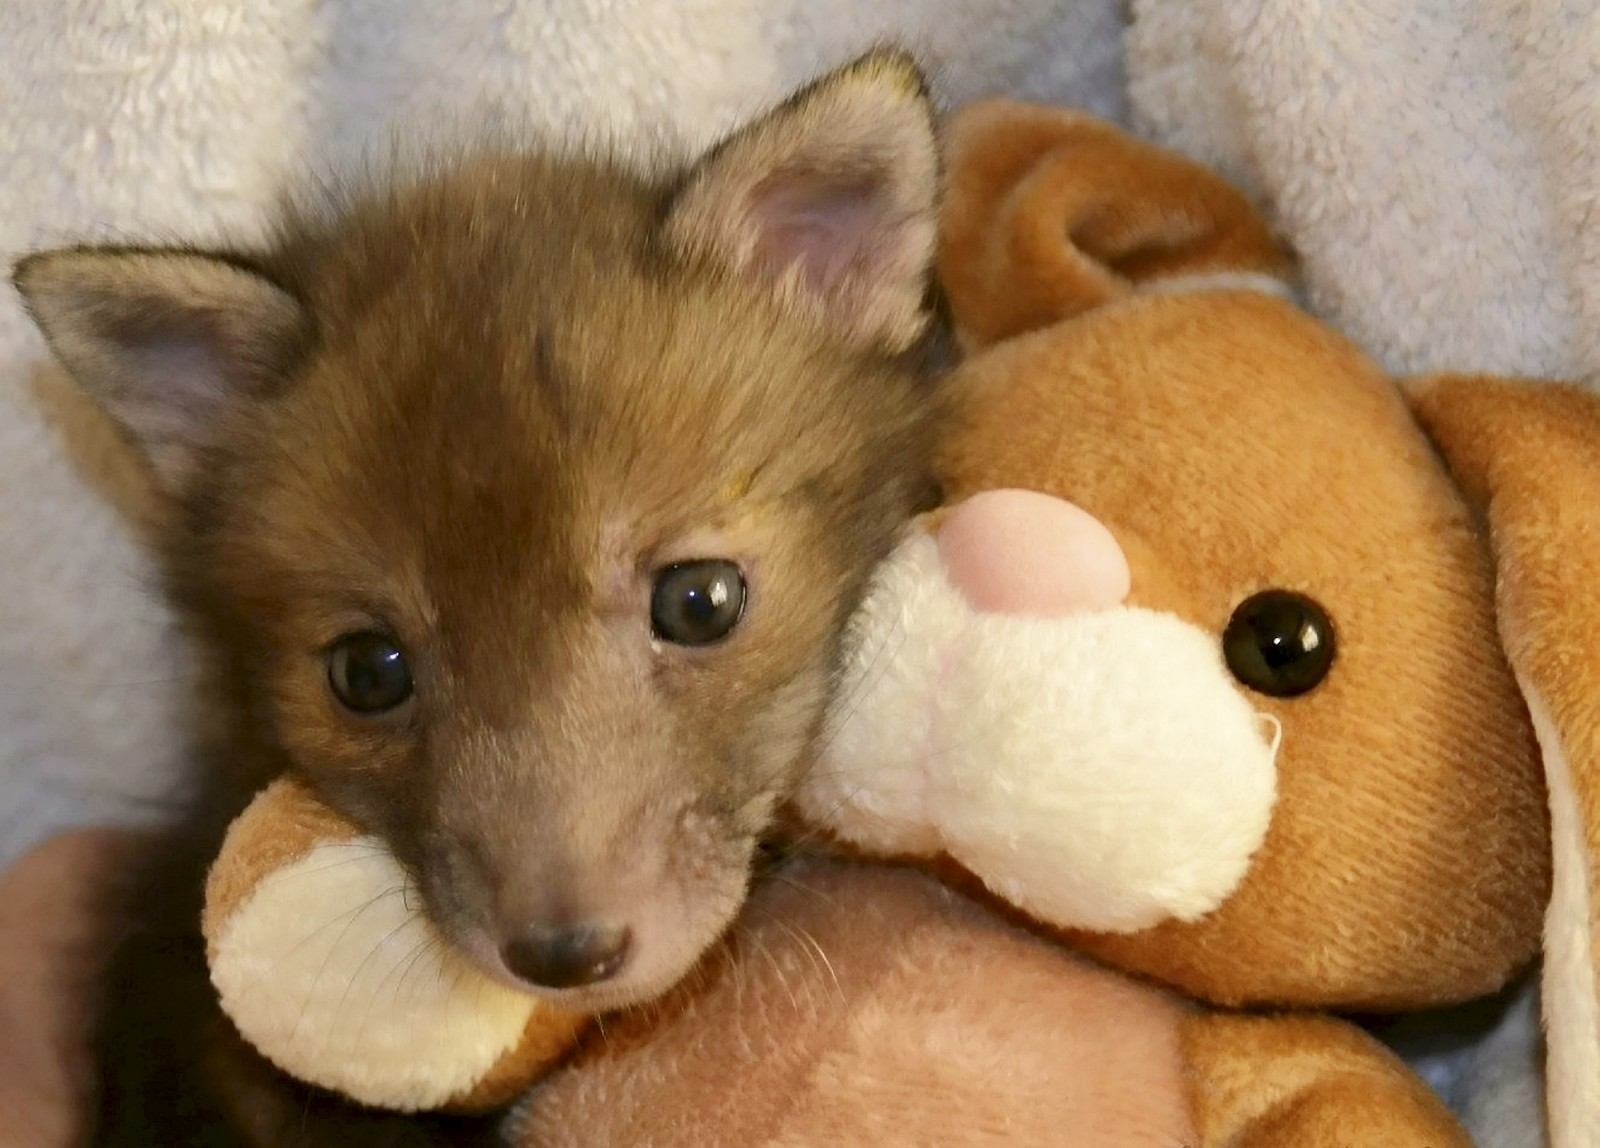 Aww! These adorable photos of a baby fox and his best friend will melt your heart.